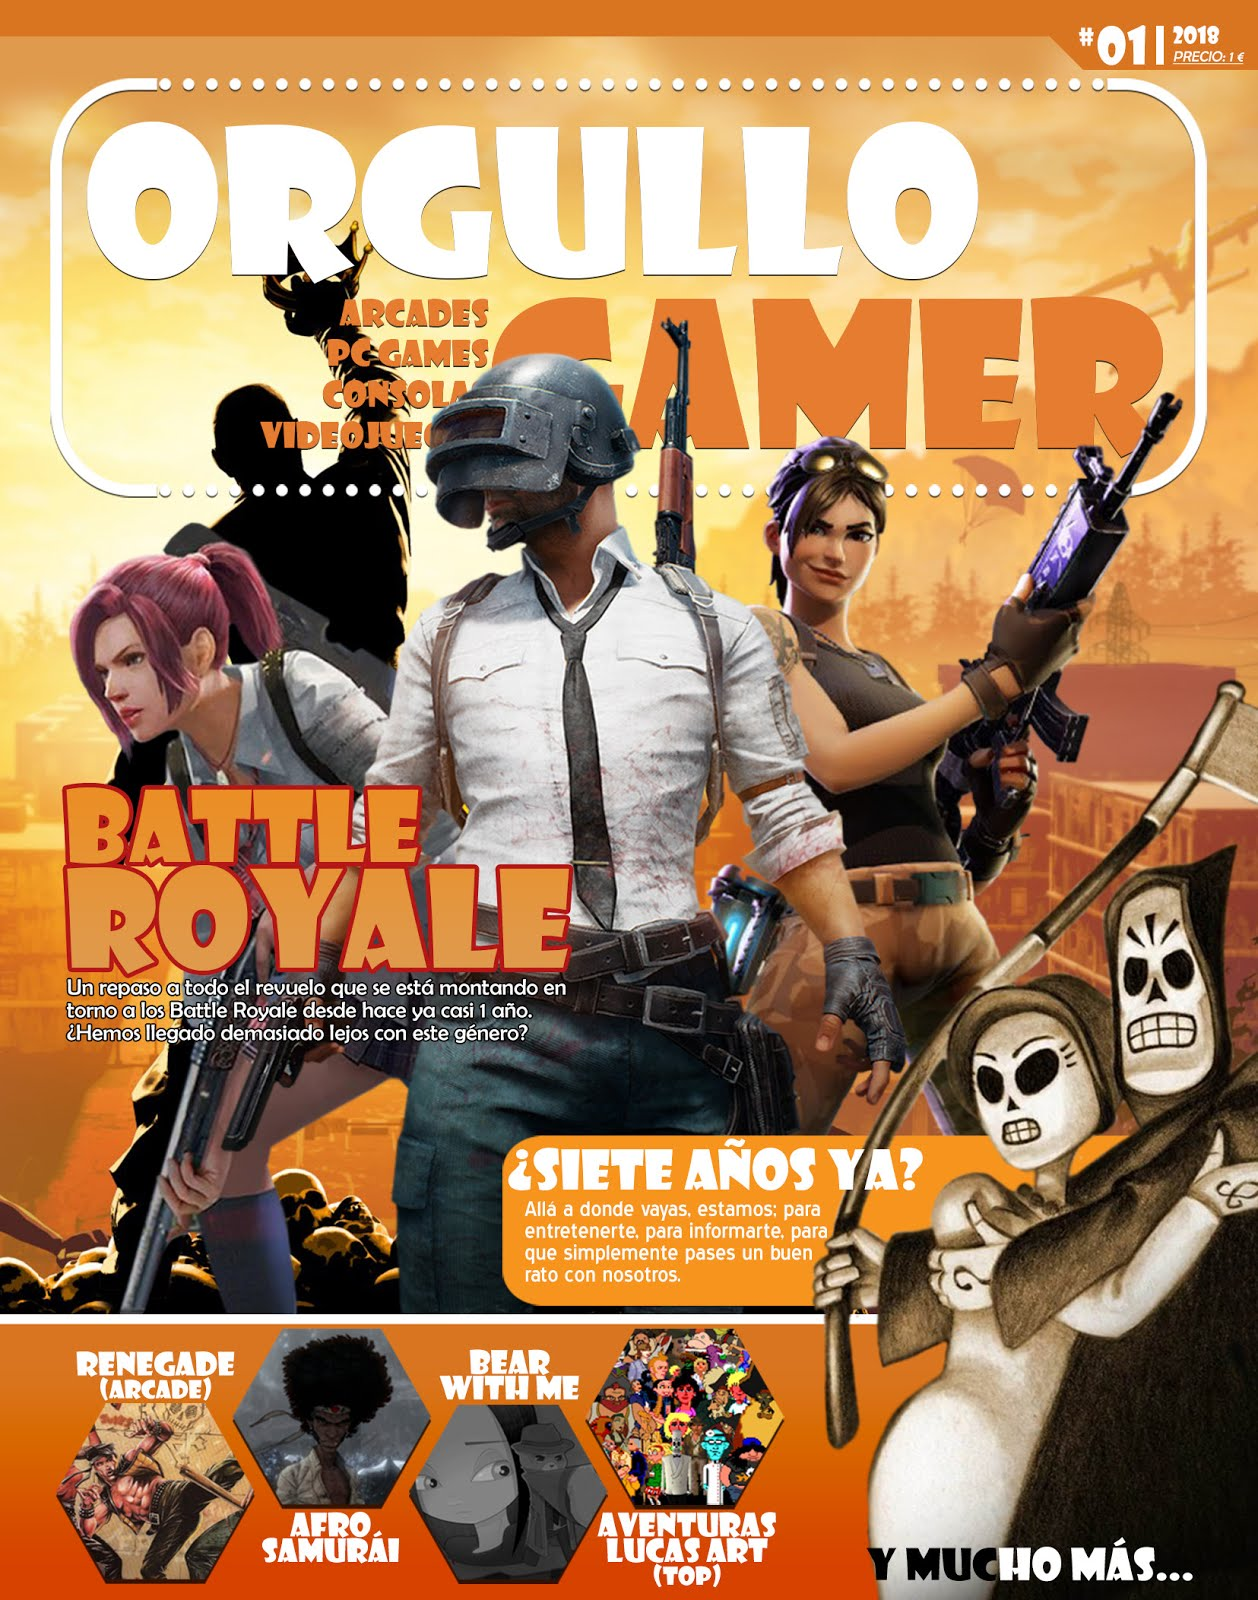 Revista Orgullogamer